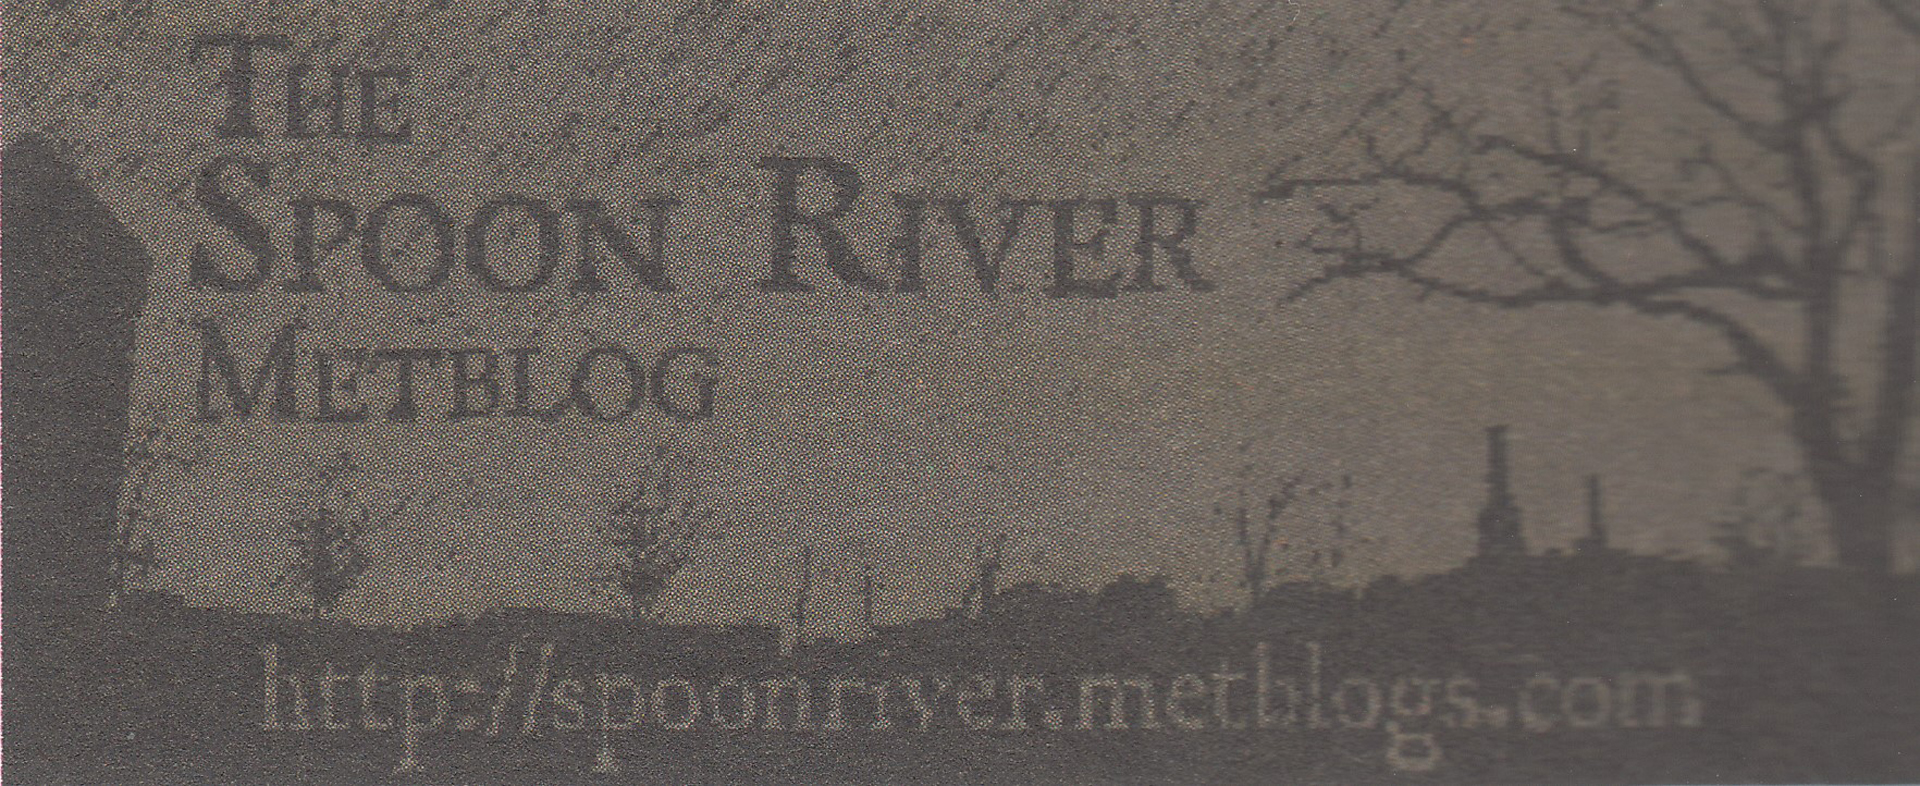 ©, Jay Bushman, The Spoon River Metblog: Net-Native Anthology and Hyperlocal Culture Wars